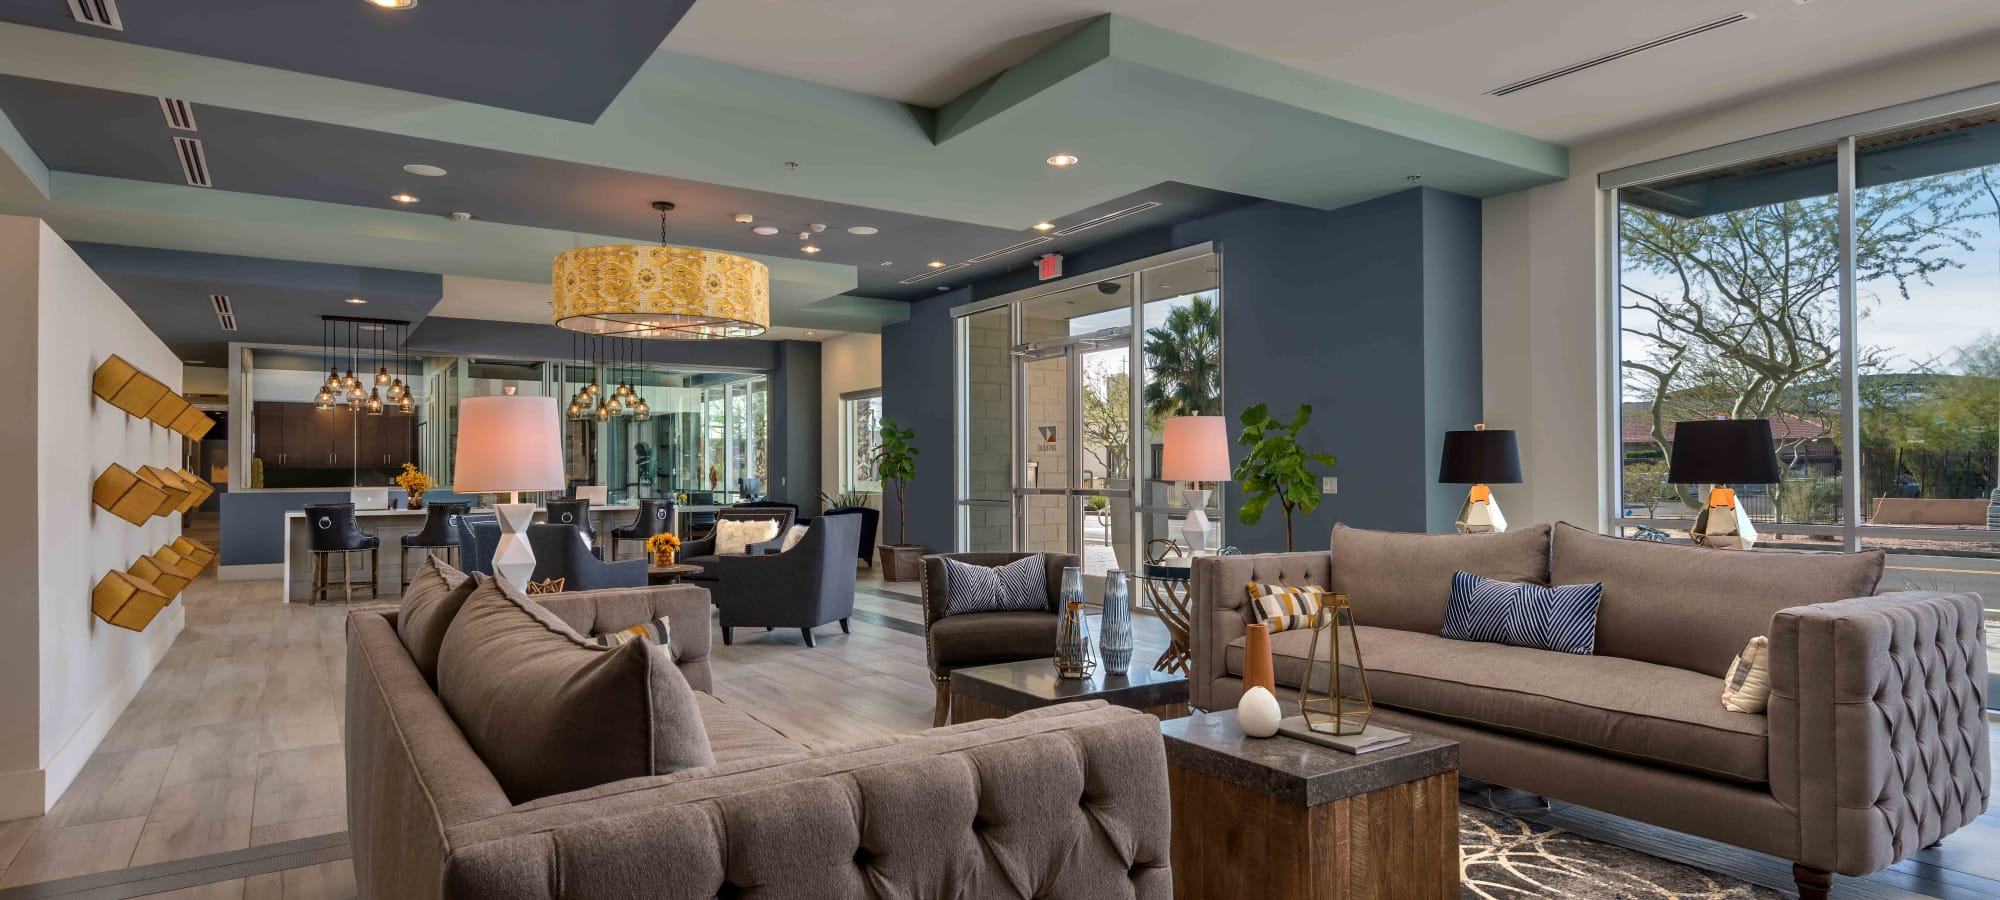 Luxurious clubhouse interior at Capital Place in Phoenix, Arizona